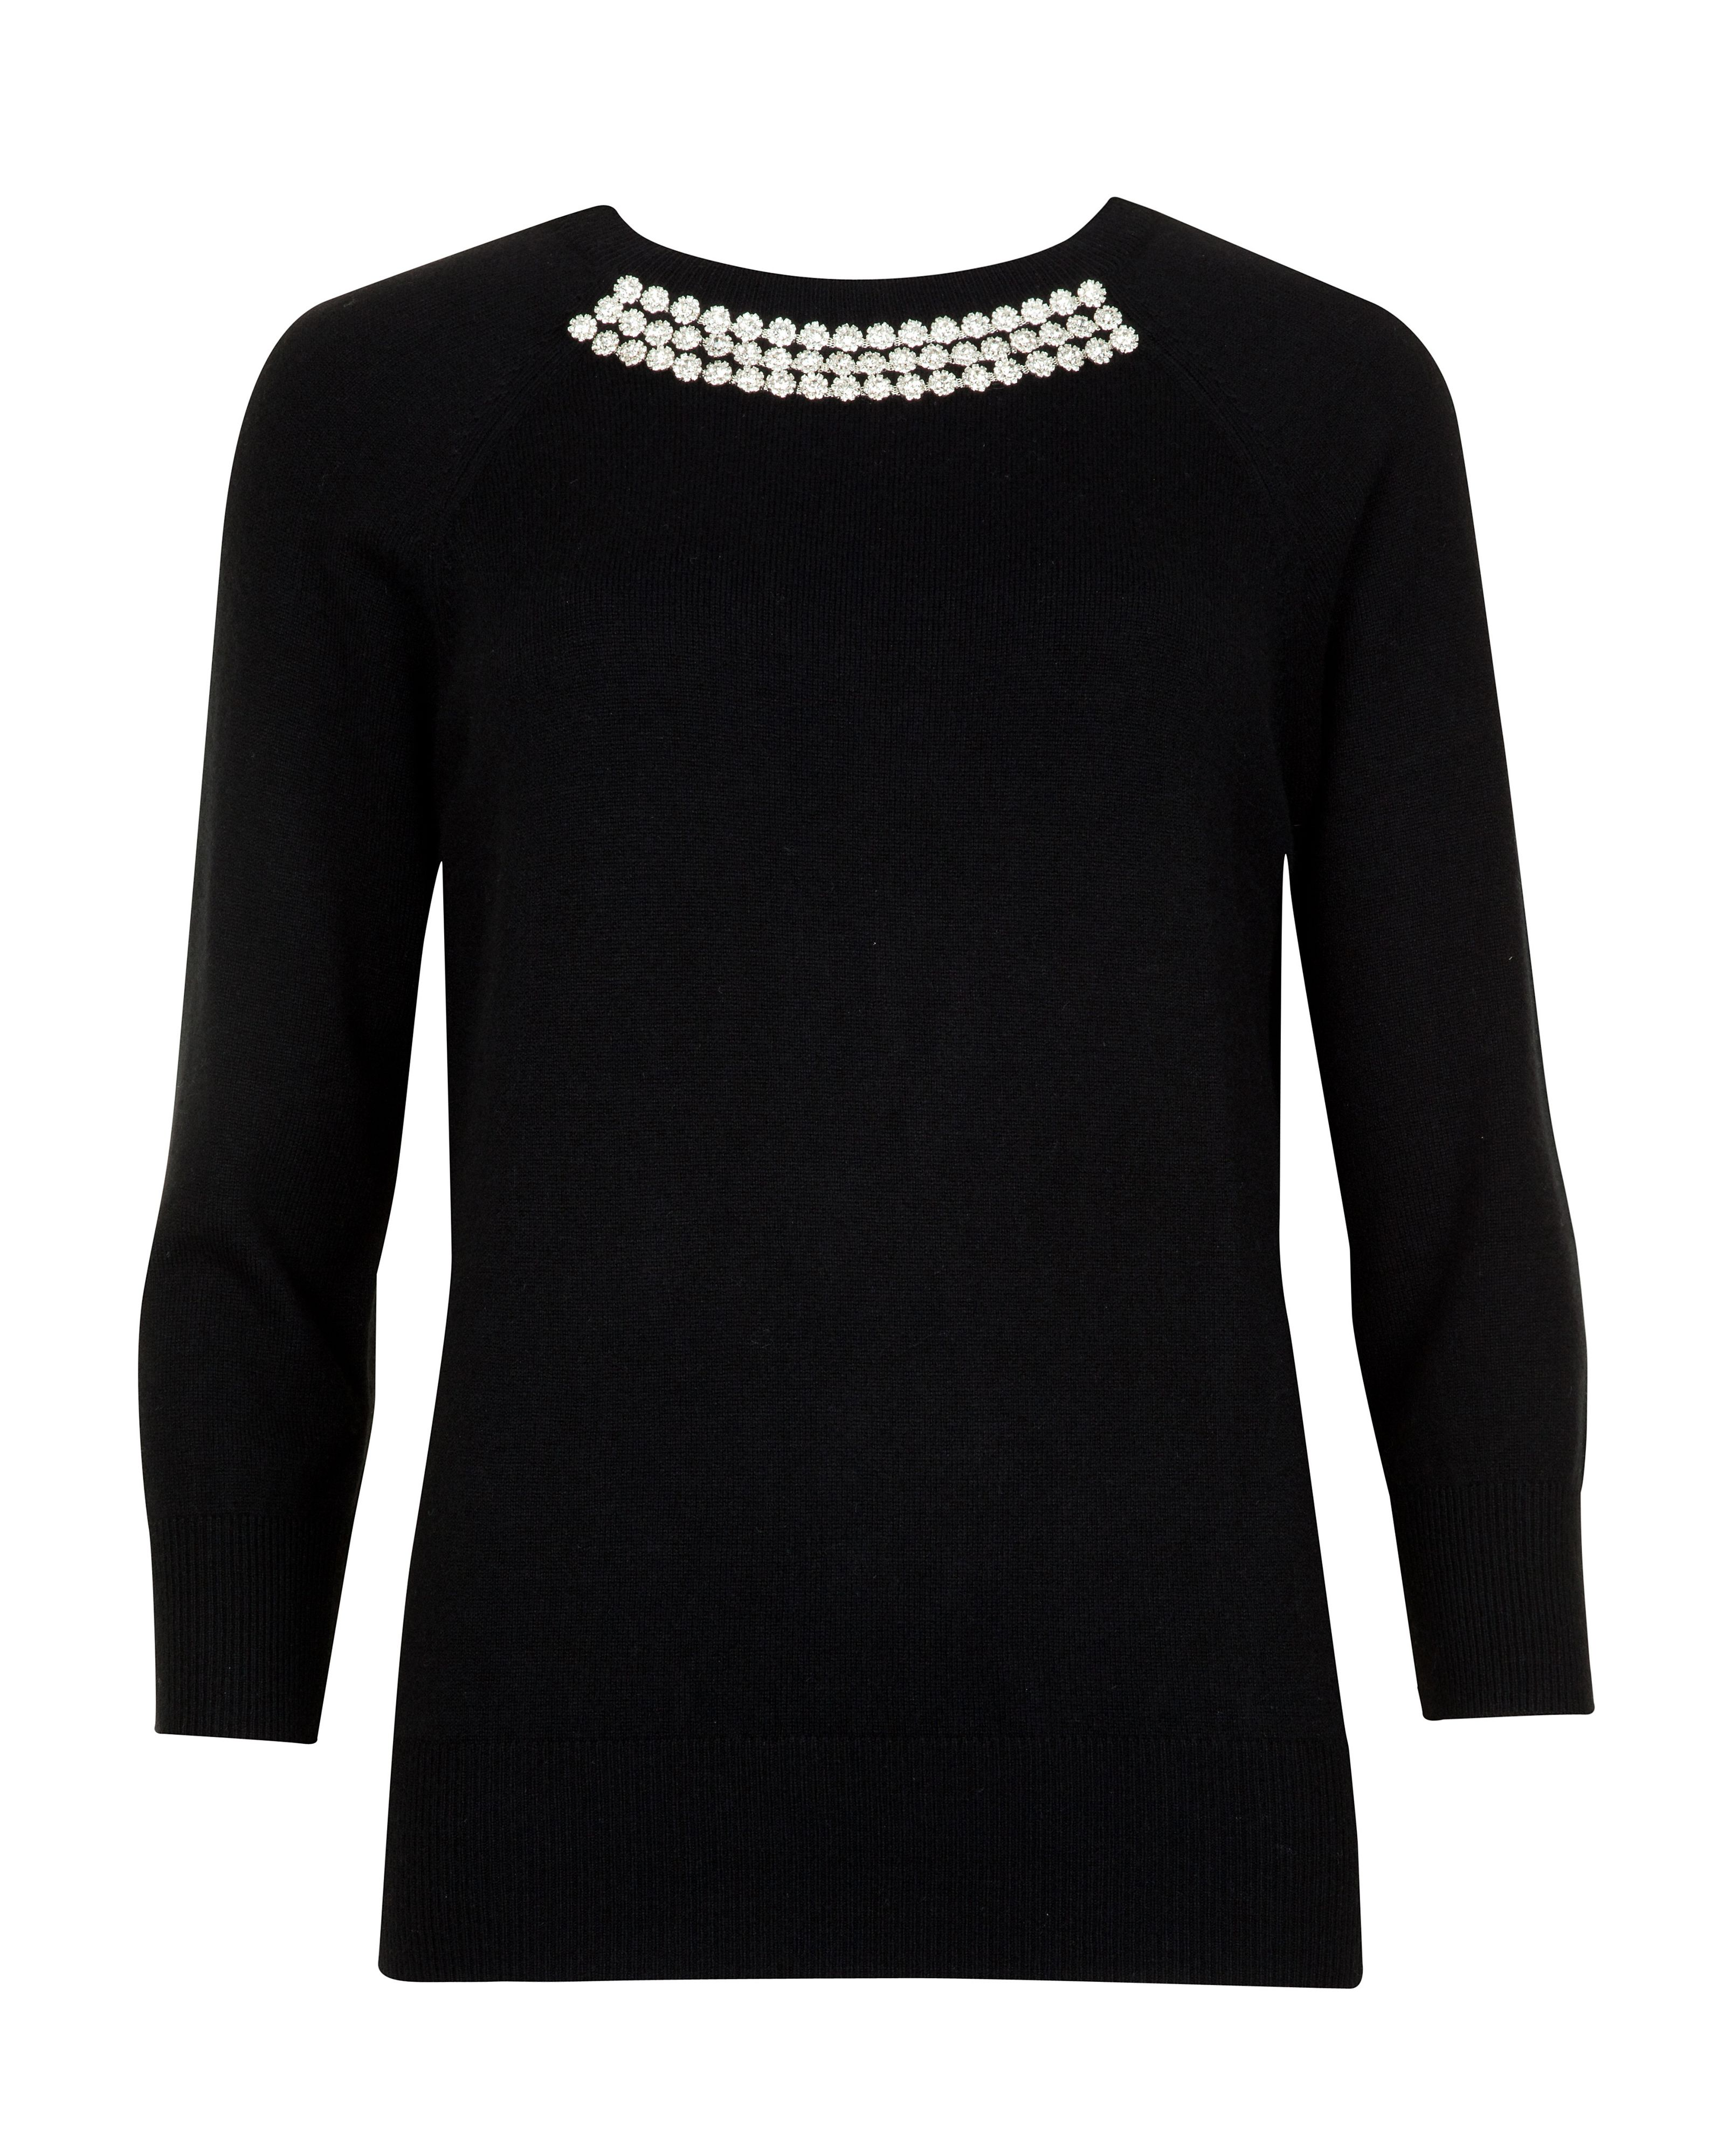 Crisana crystal embellished knit jumper